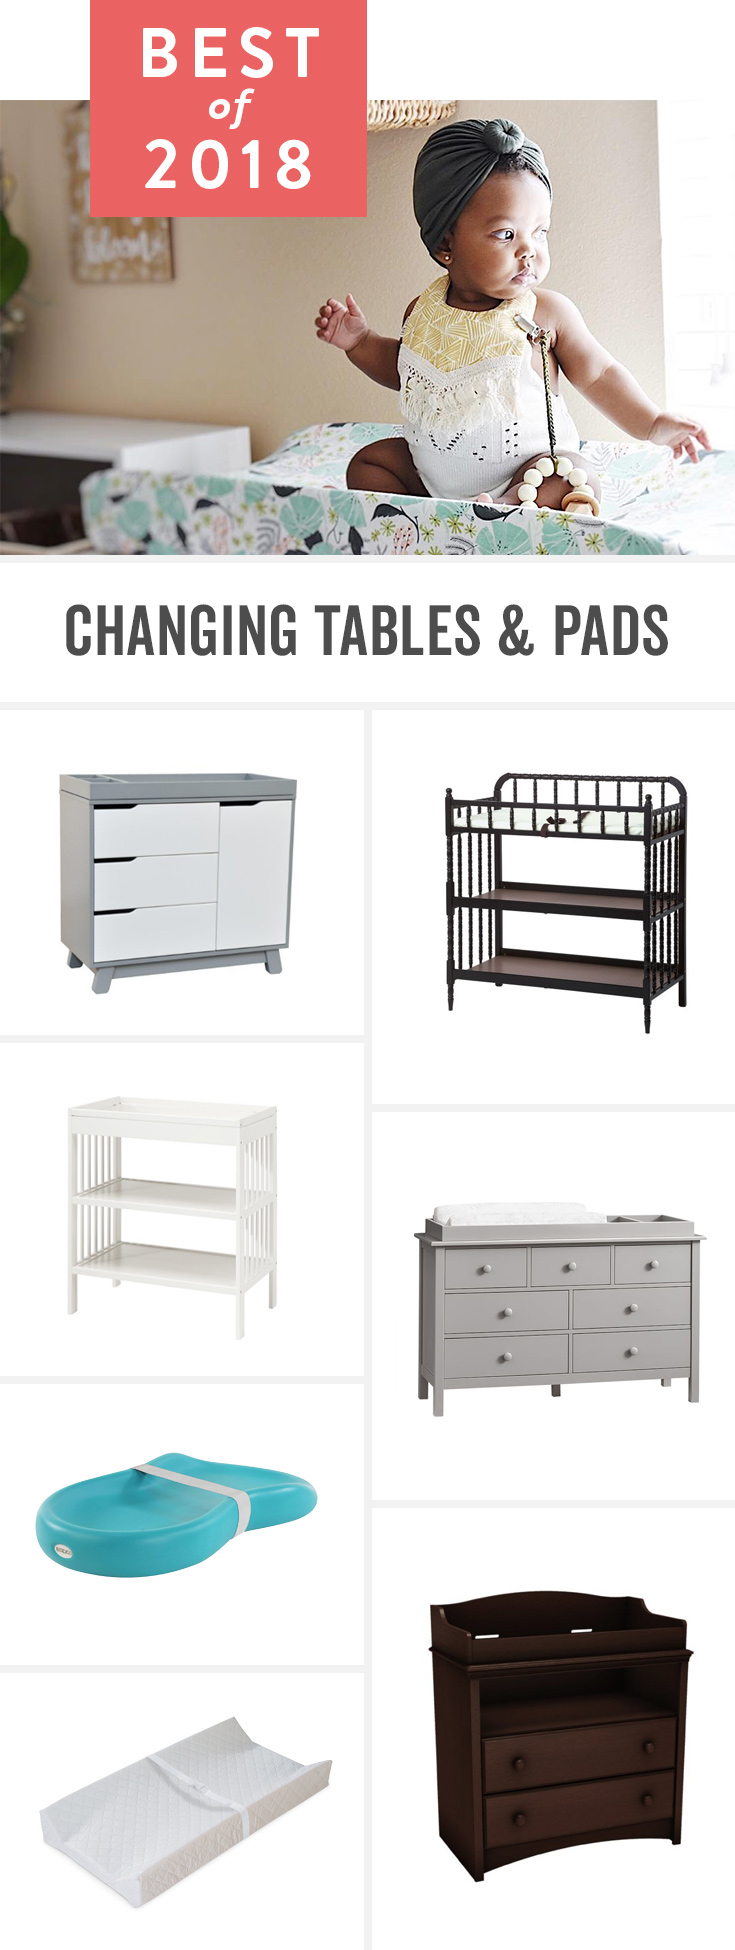 No One Likes Changing Dirty Diapers, But These Tables And Pads Make It As  Easy Best Changing Tables ...